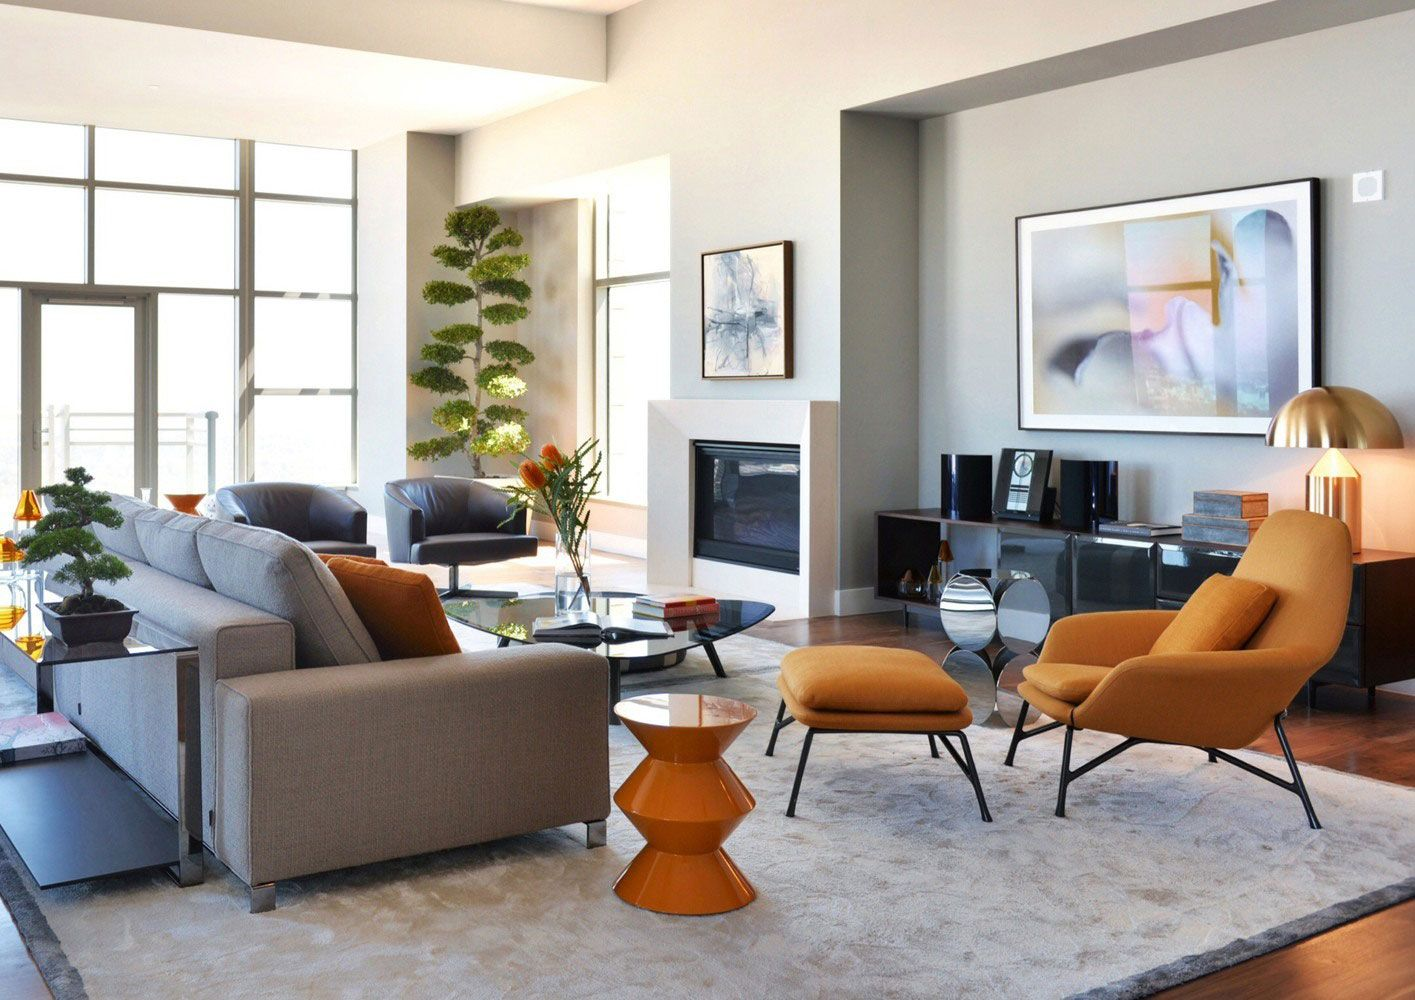 carlyle residence penthouse by minotti caandesign architecture